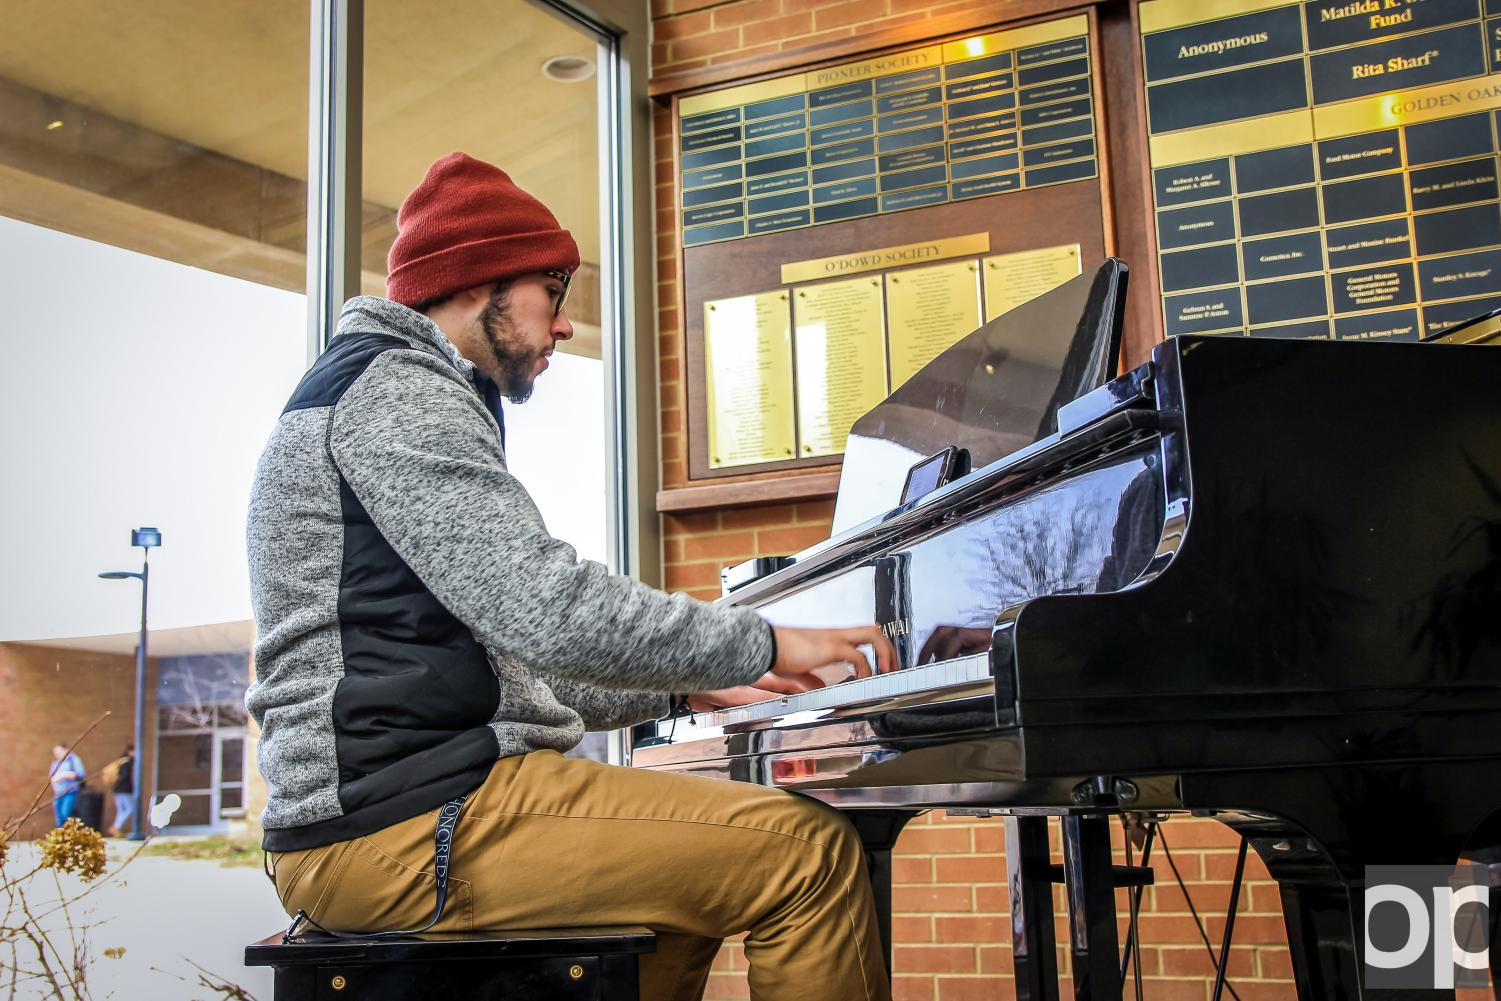 John Bollda comes to the OC to play on the grand piano for a few minutes